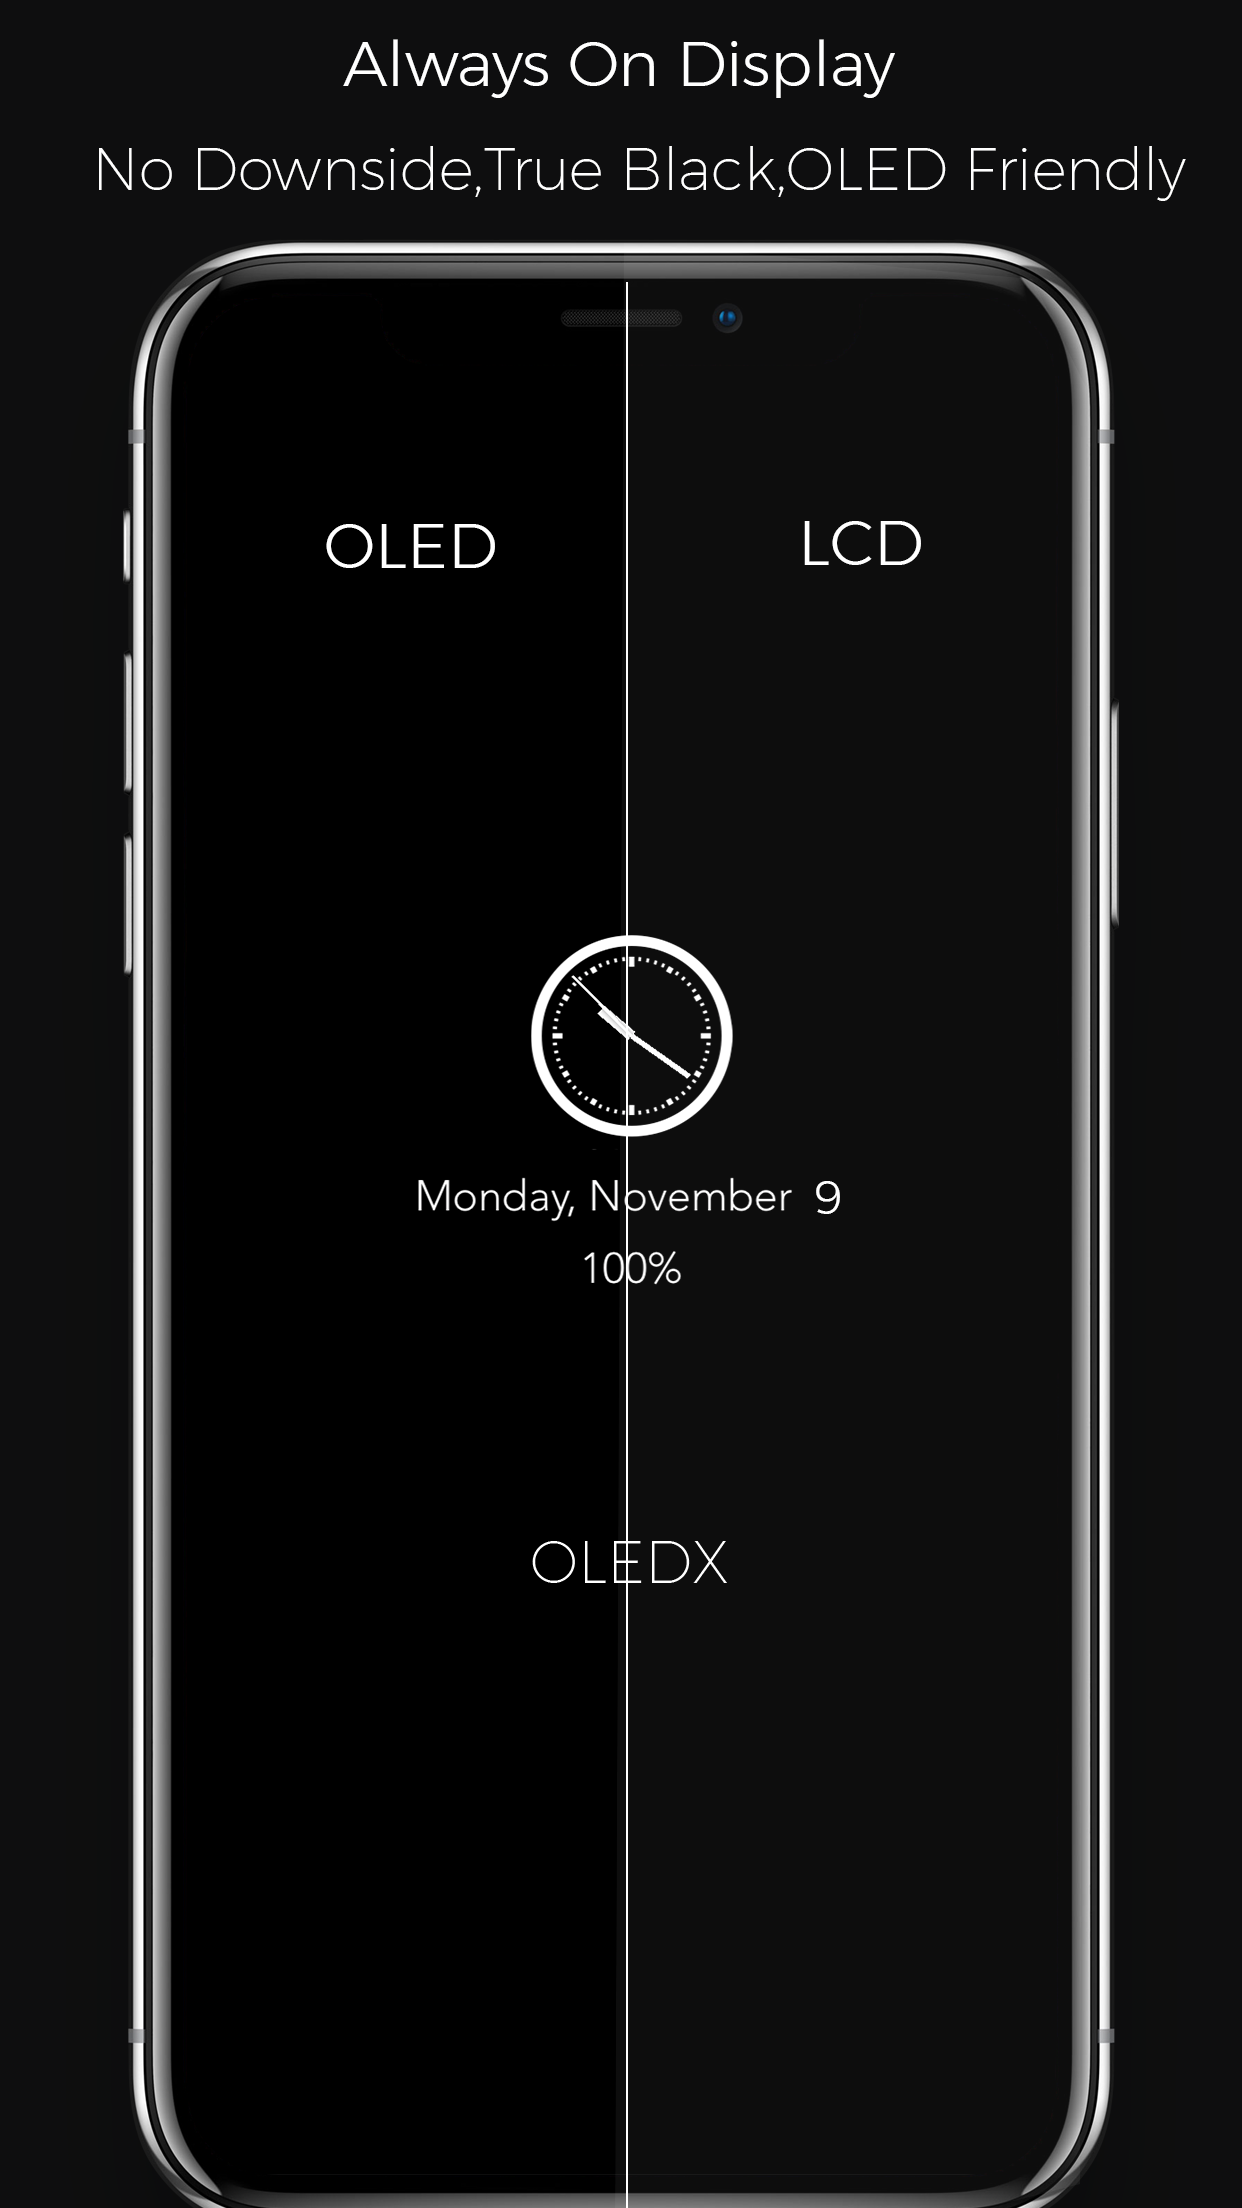 You can download OLEDX now on the App Store.